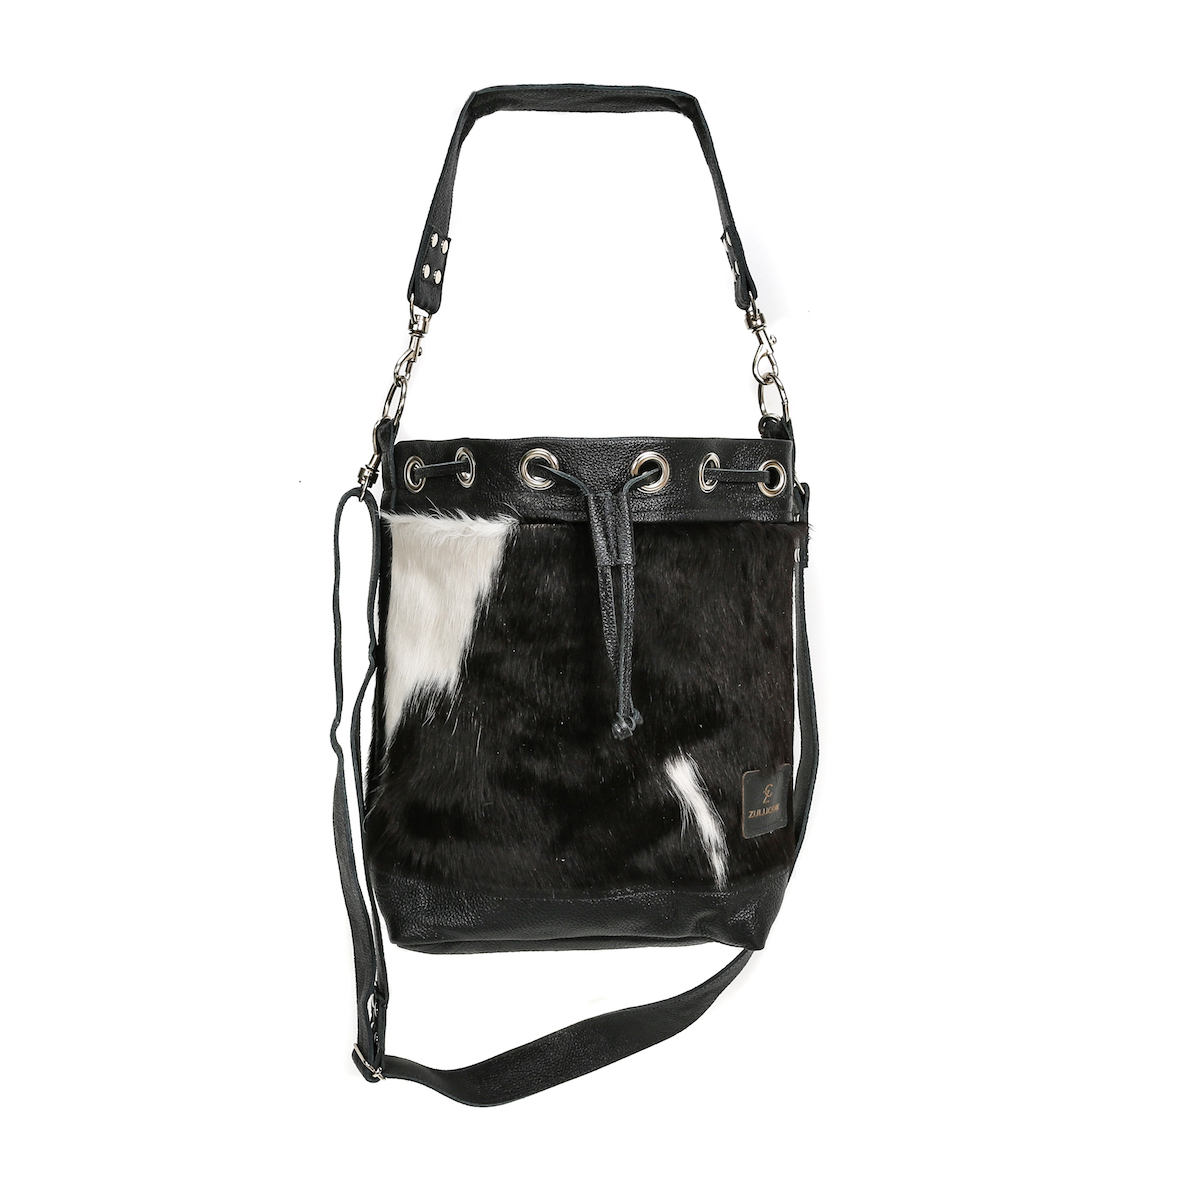 bags-leather-bucket-bags-cowhide-bags-black and white, leather bags, fashion accessories, women's accessories, sustainable leather, handmade, ethical fashion